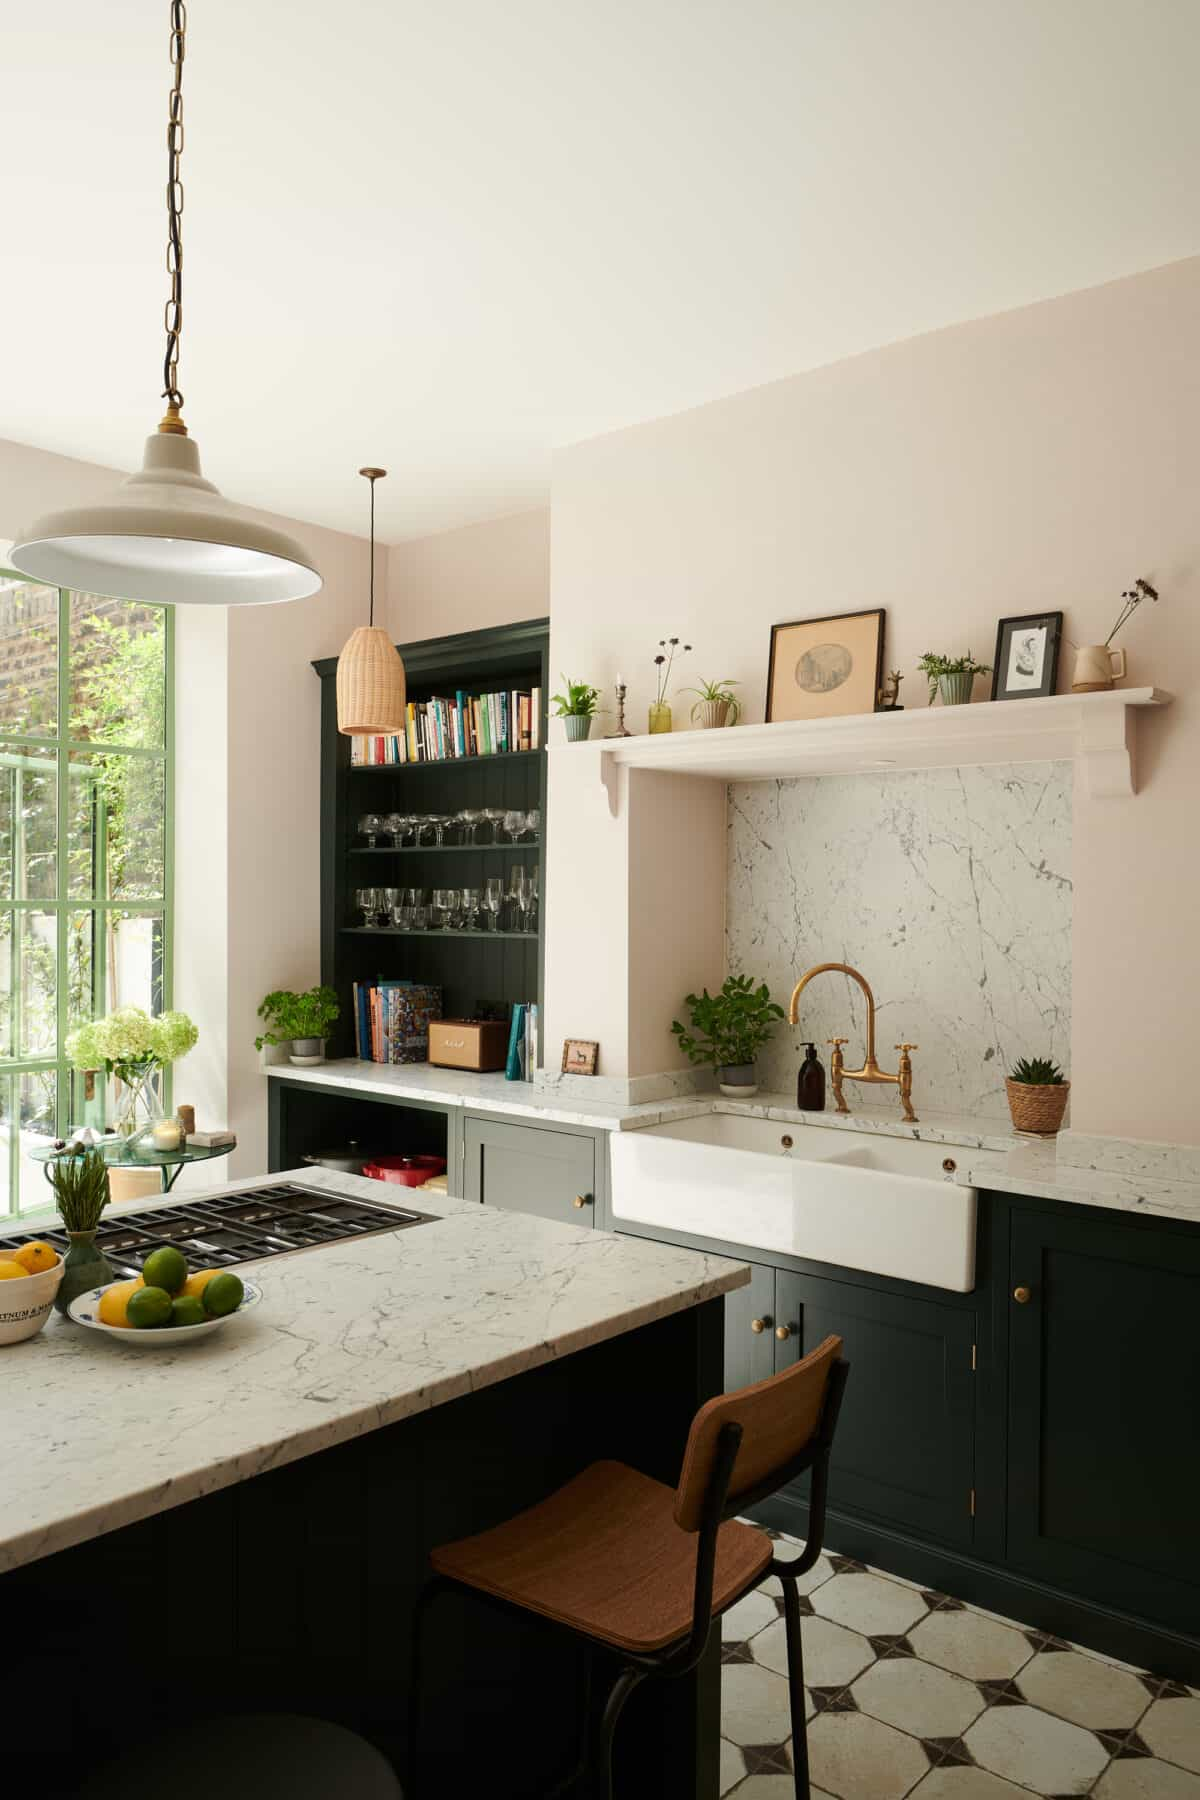 this is a devol kitchen with a large apron sink